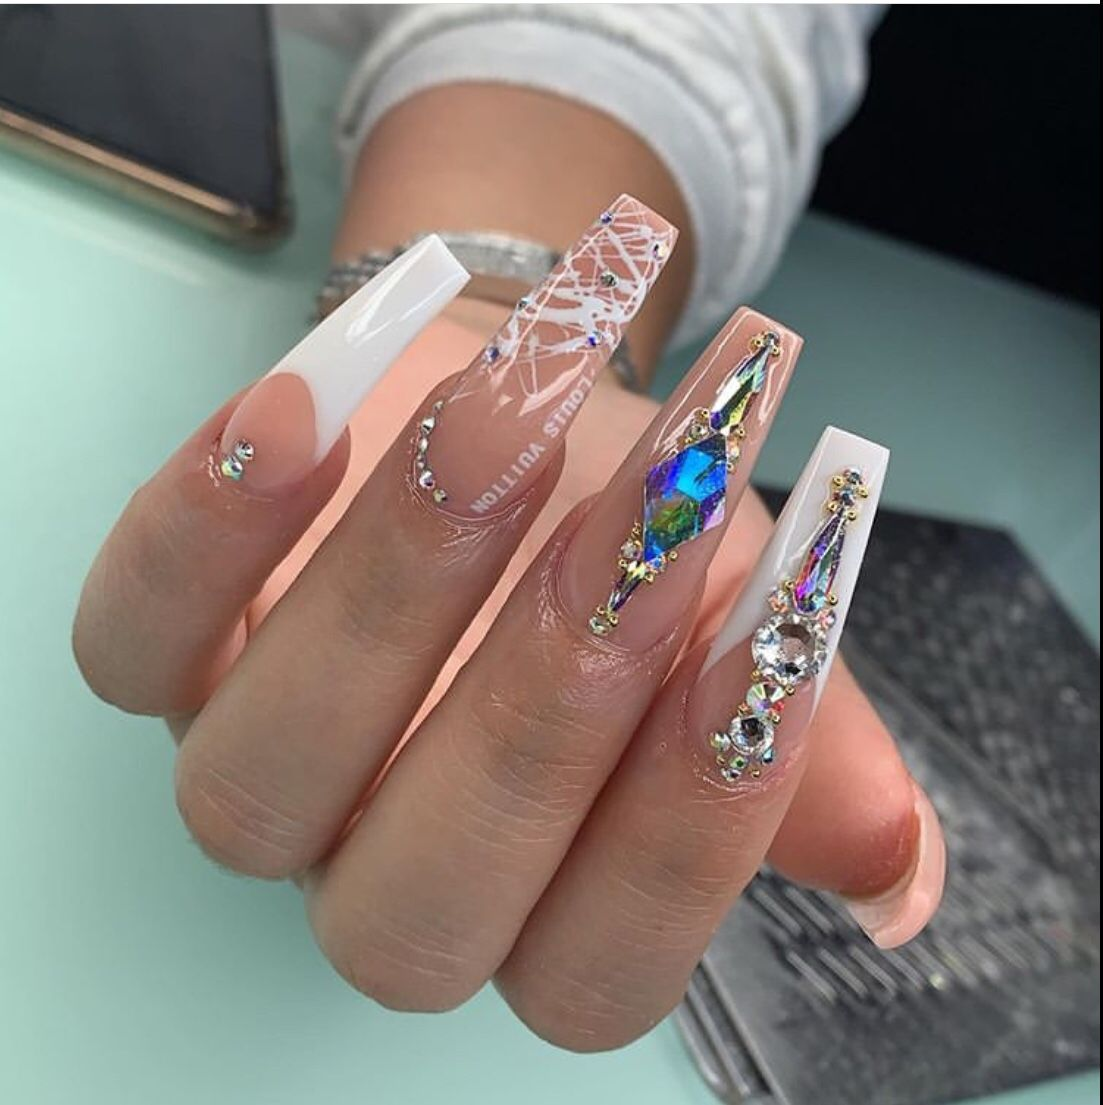 50 Glam Nail Designs For Prom 2020 The Glossychic In 2020 Glam Nails Bling Nails Simple Acrylic Nails